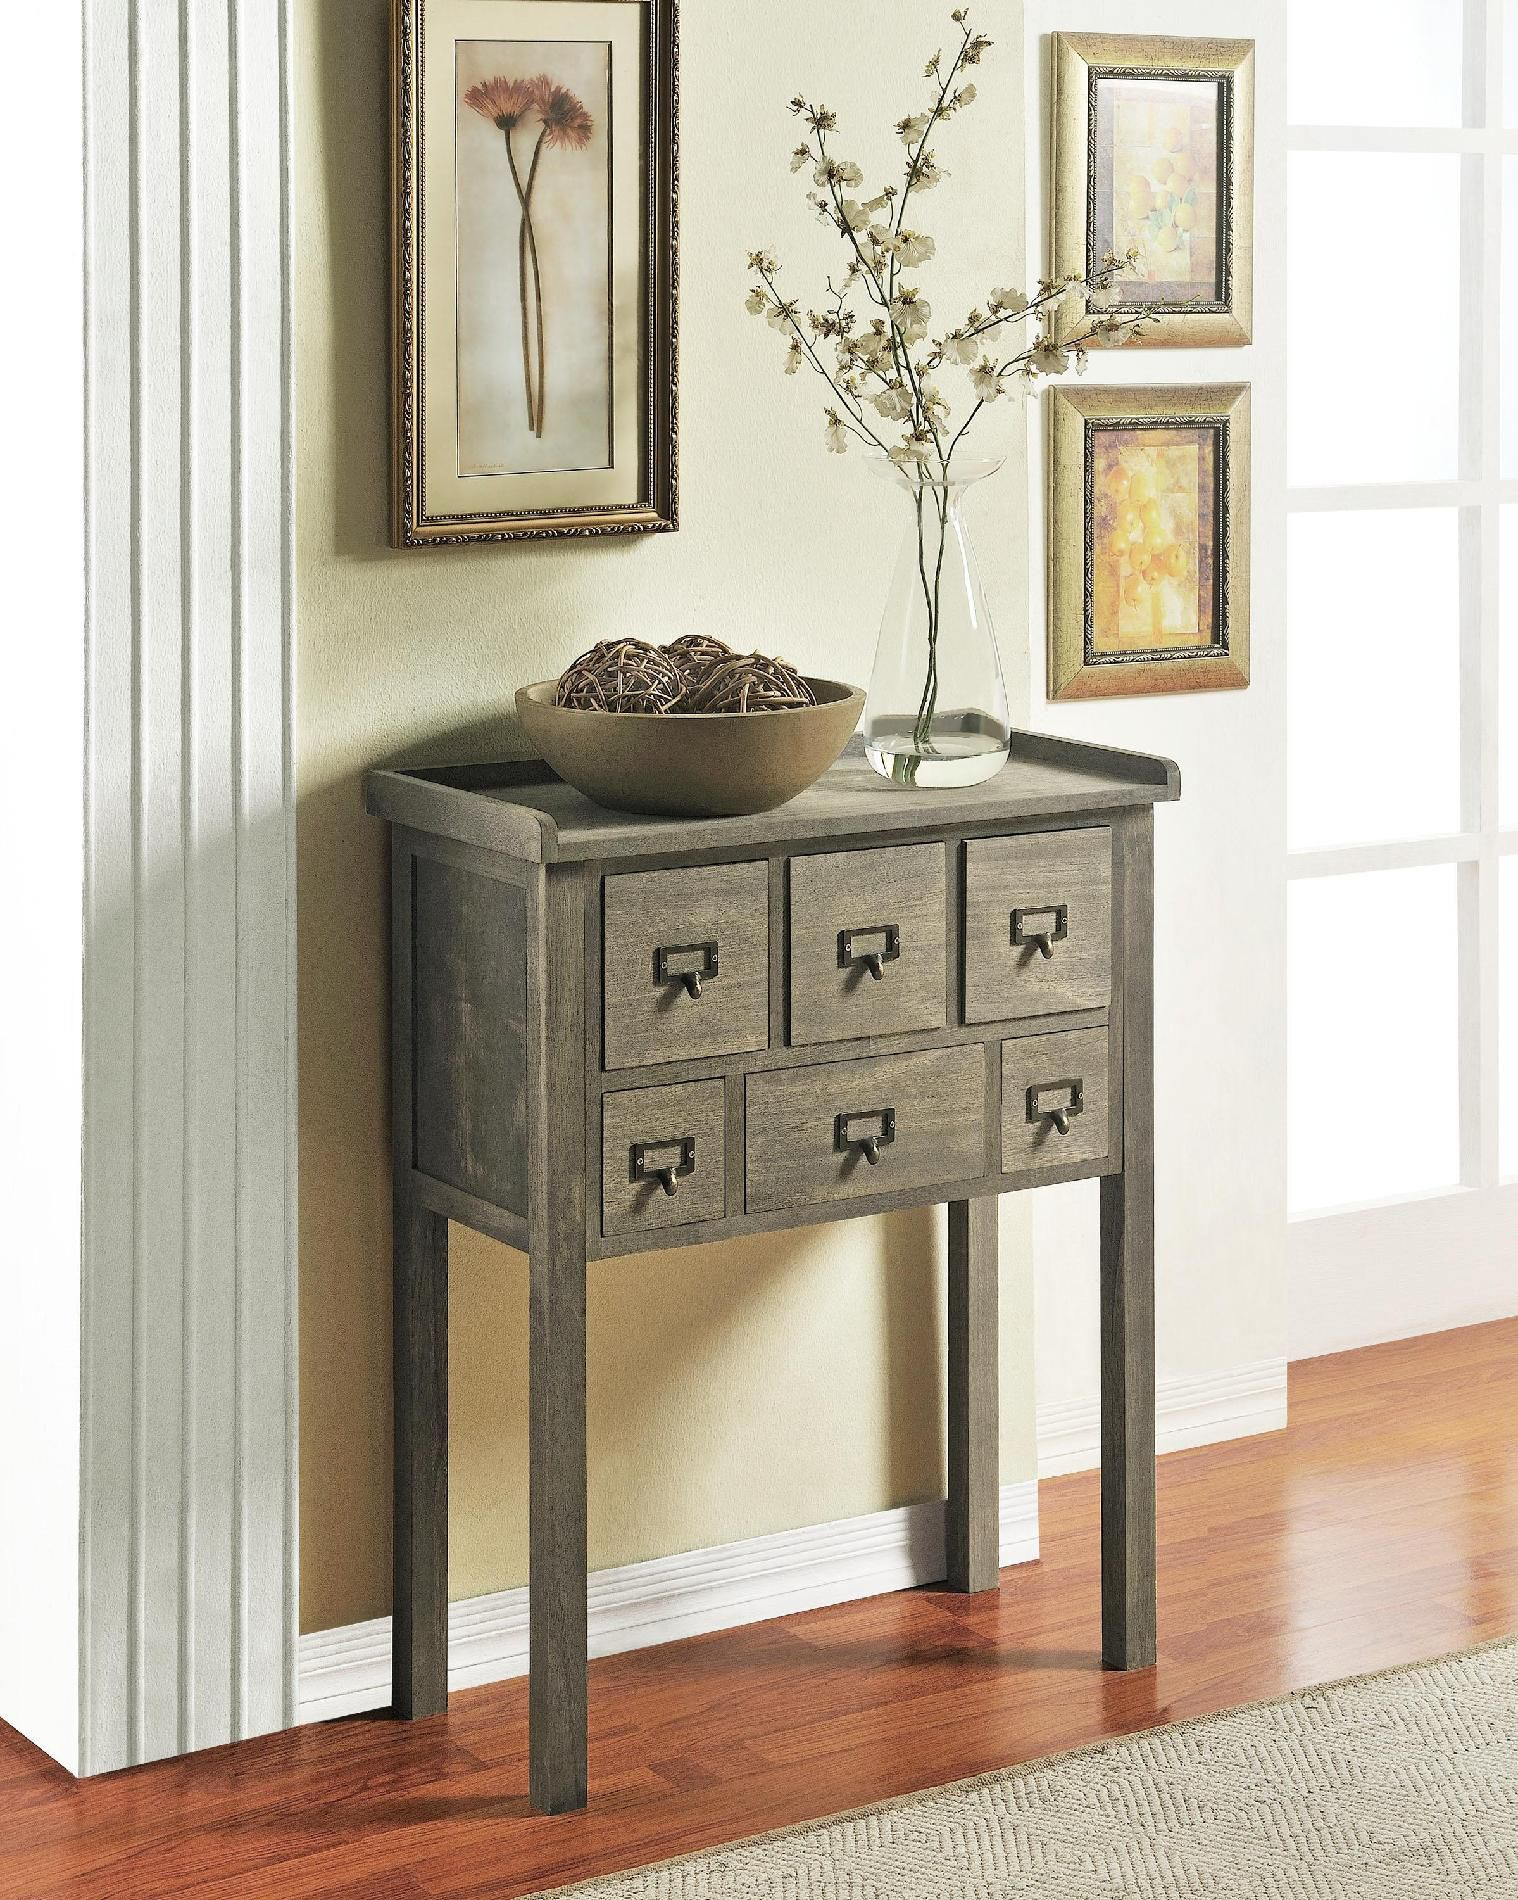 front hall furniture. Entry Hall Furniture Ideas. For My Front Hallway--altra 6 Drawer Accent